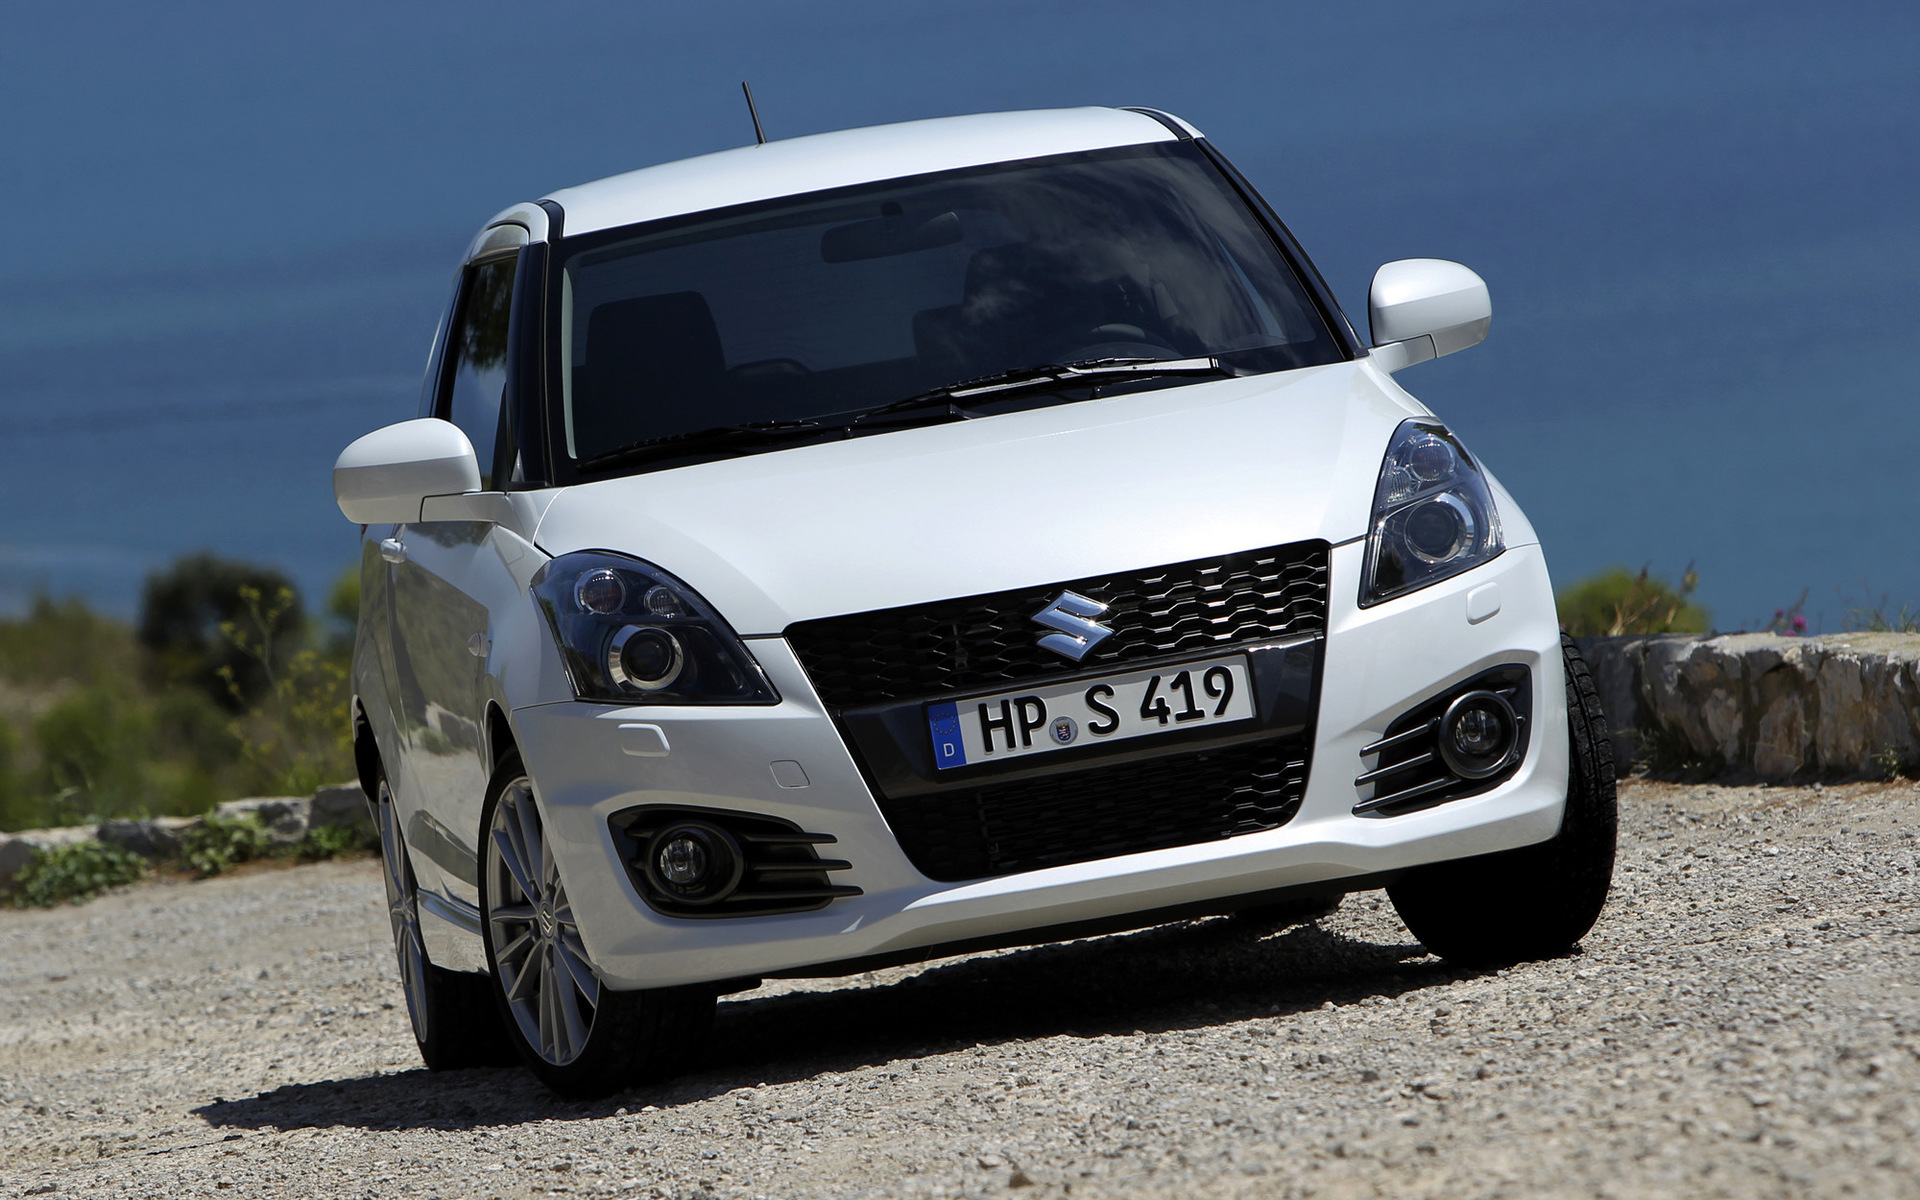 2011 Suzuki Swift Sport   Wallpapers and HD Images Car Pixel 1920x1200